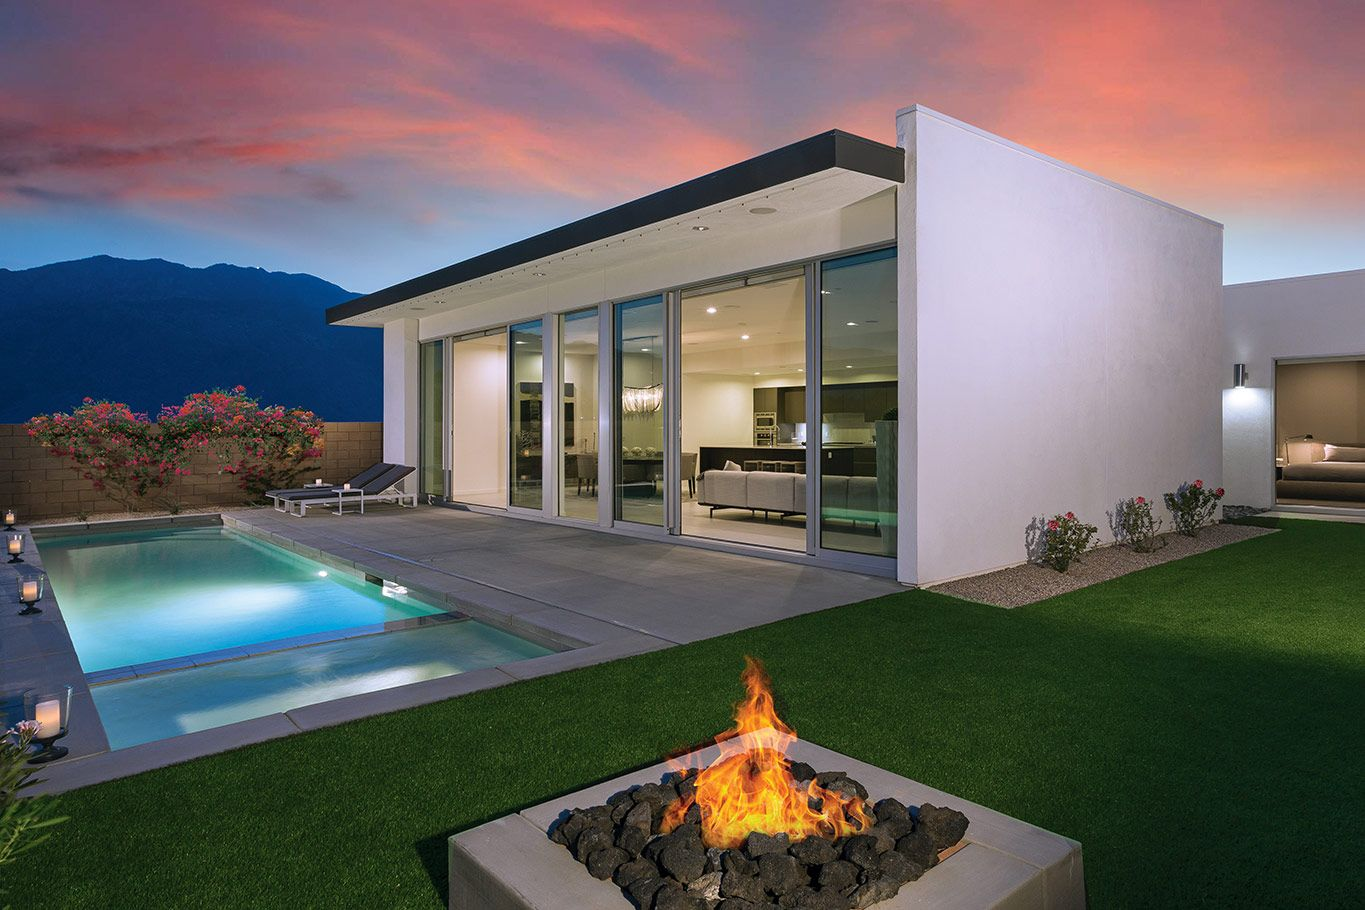 Palm springs real estate palm springs real estate agents for Palm spring houses for sale